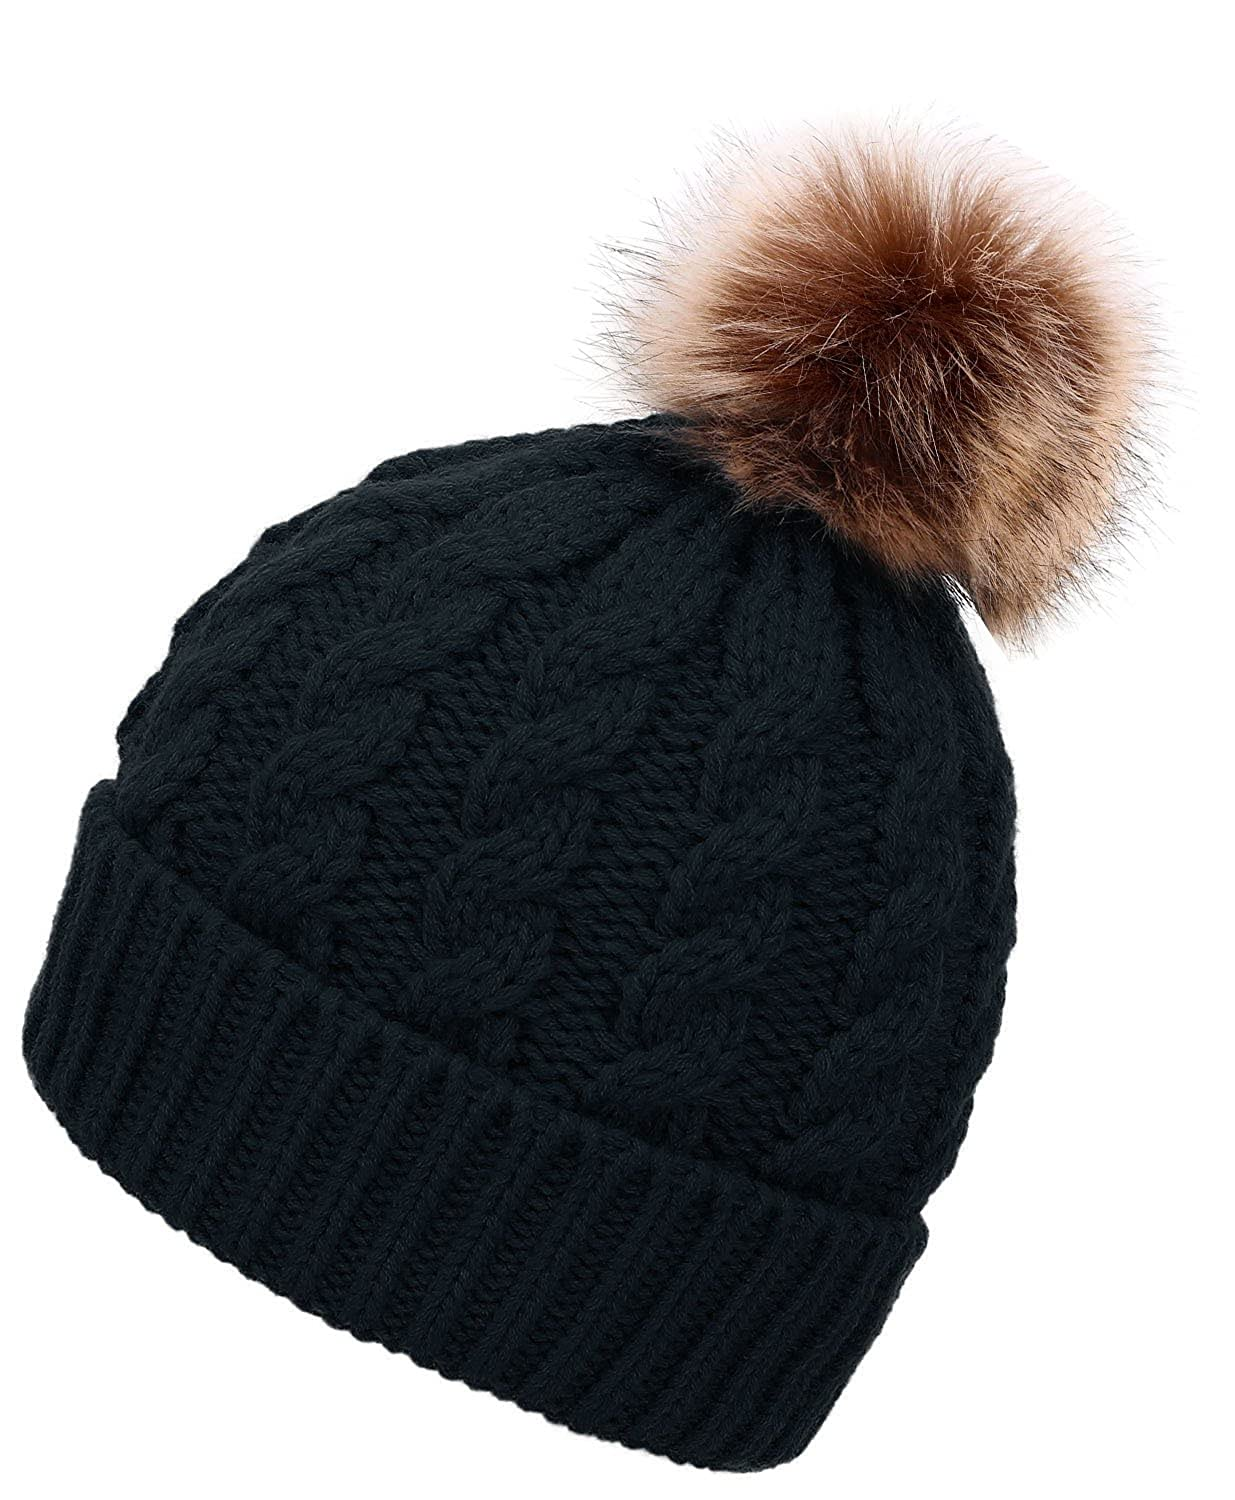 831c8f51f08 Men   Women s Winter Cable Knit Faux Fur Pom Pom Foldable Cuff Black Beanie  Hat at Amazon Women s Clothing store